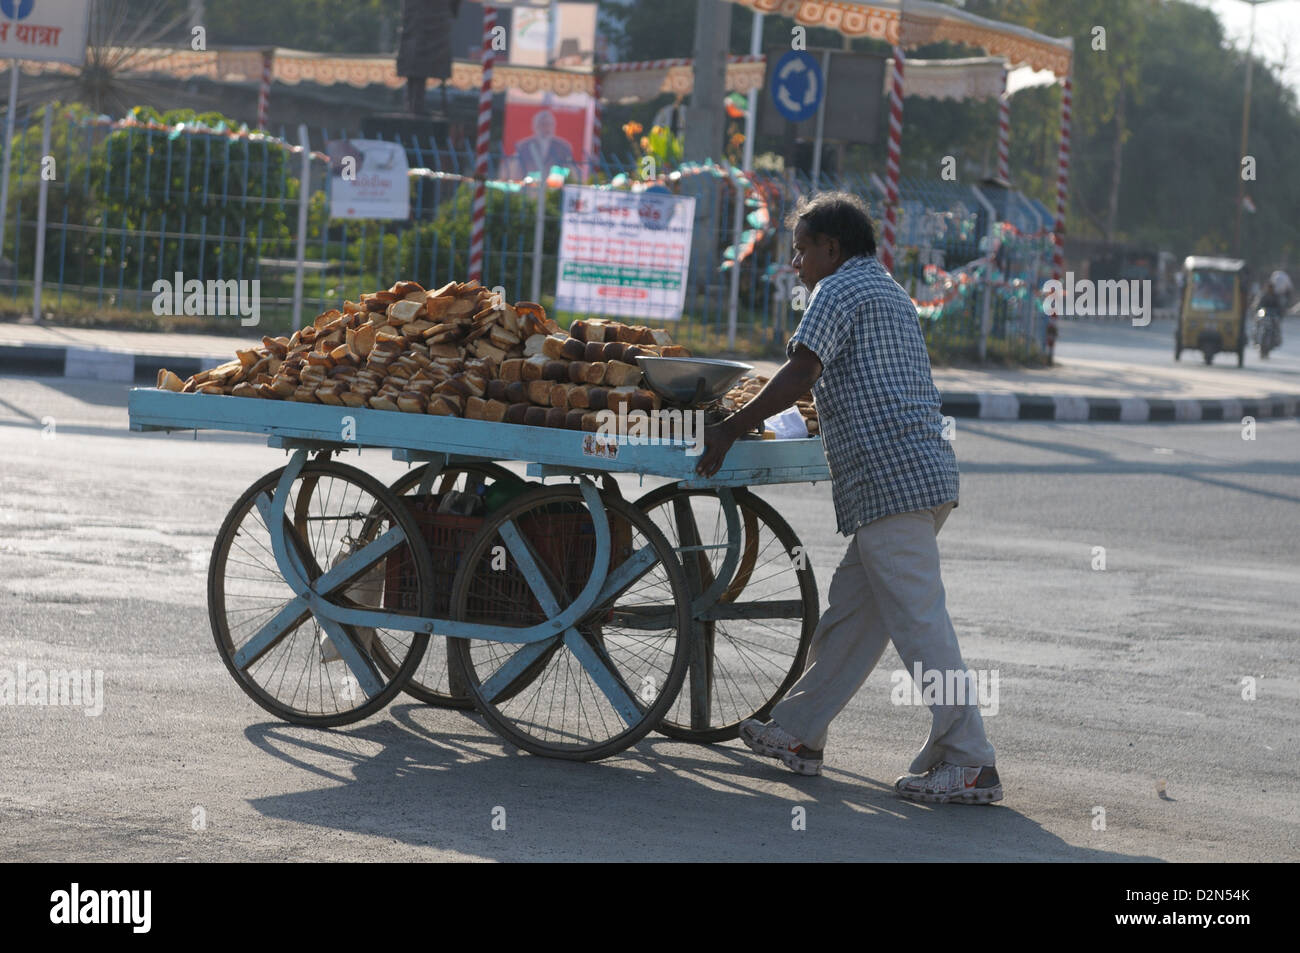 Selling varieties of bread on a push cart, Gujarat, India, Asia - Stock Image